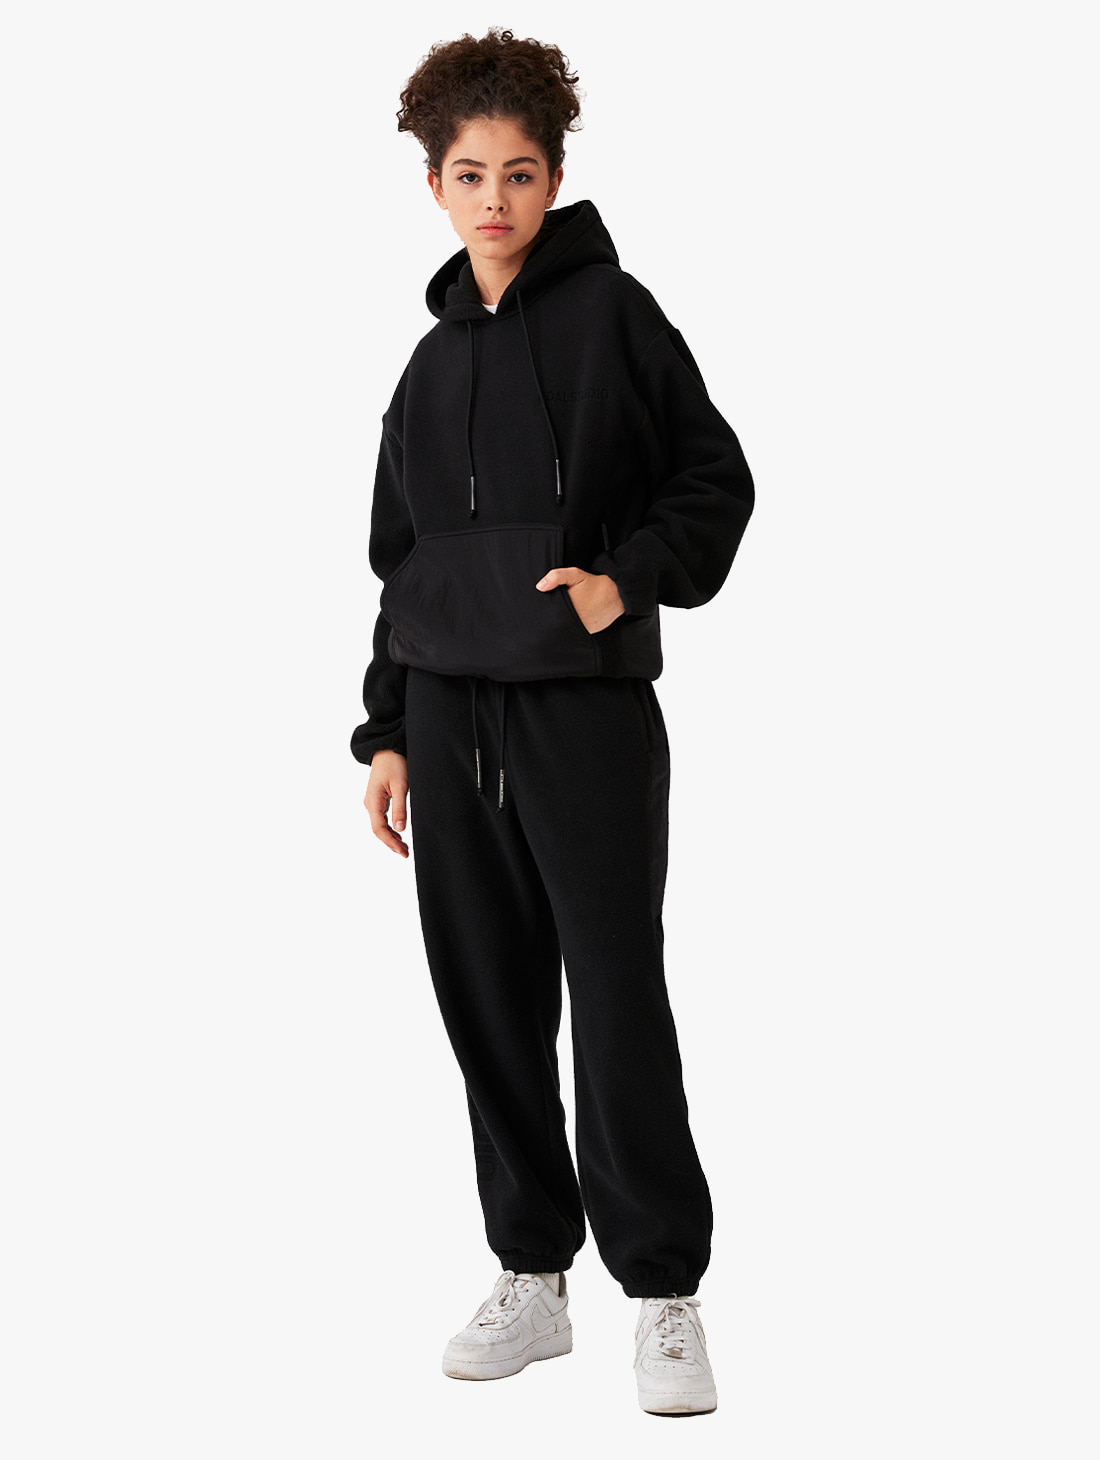 GOALSTUDIO [10% OFF] NYLON METAL MIXED FLEECE HOODIE & LONG PANTS SET